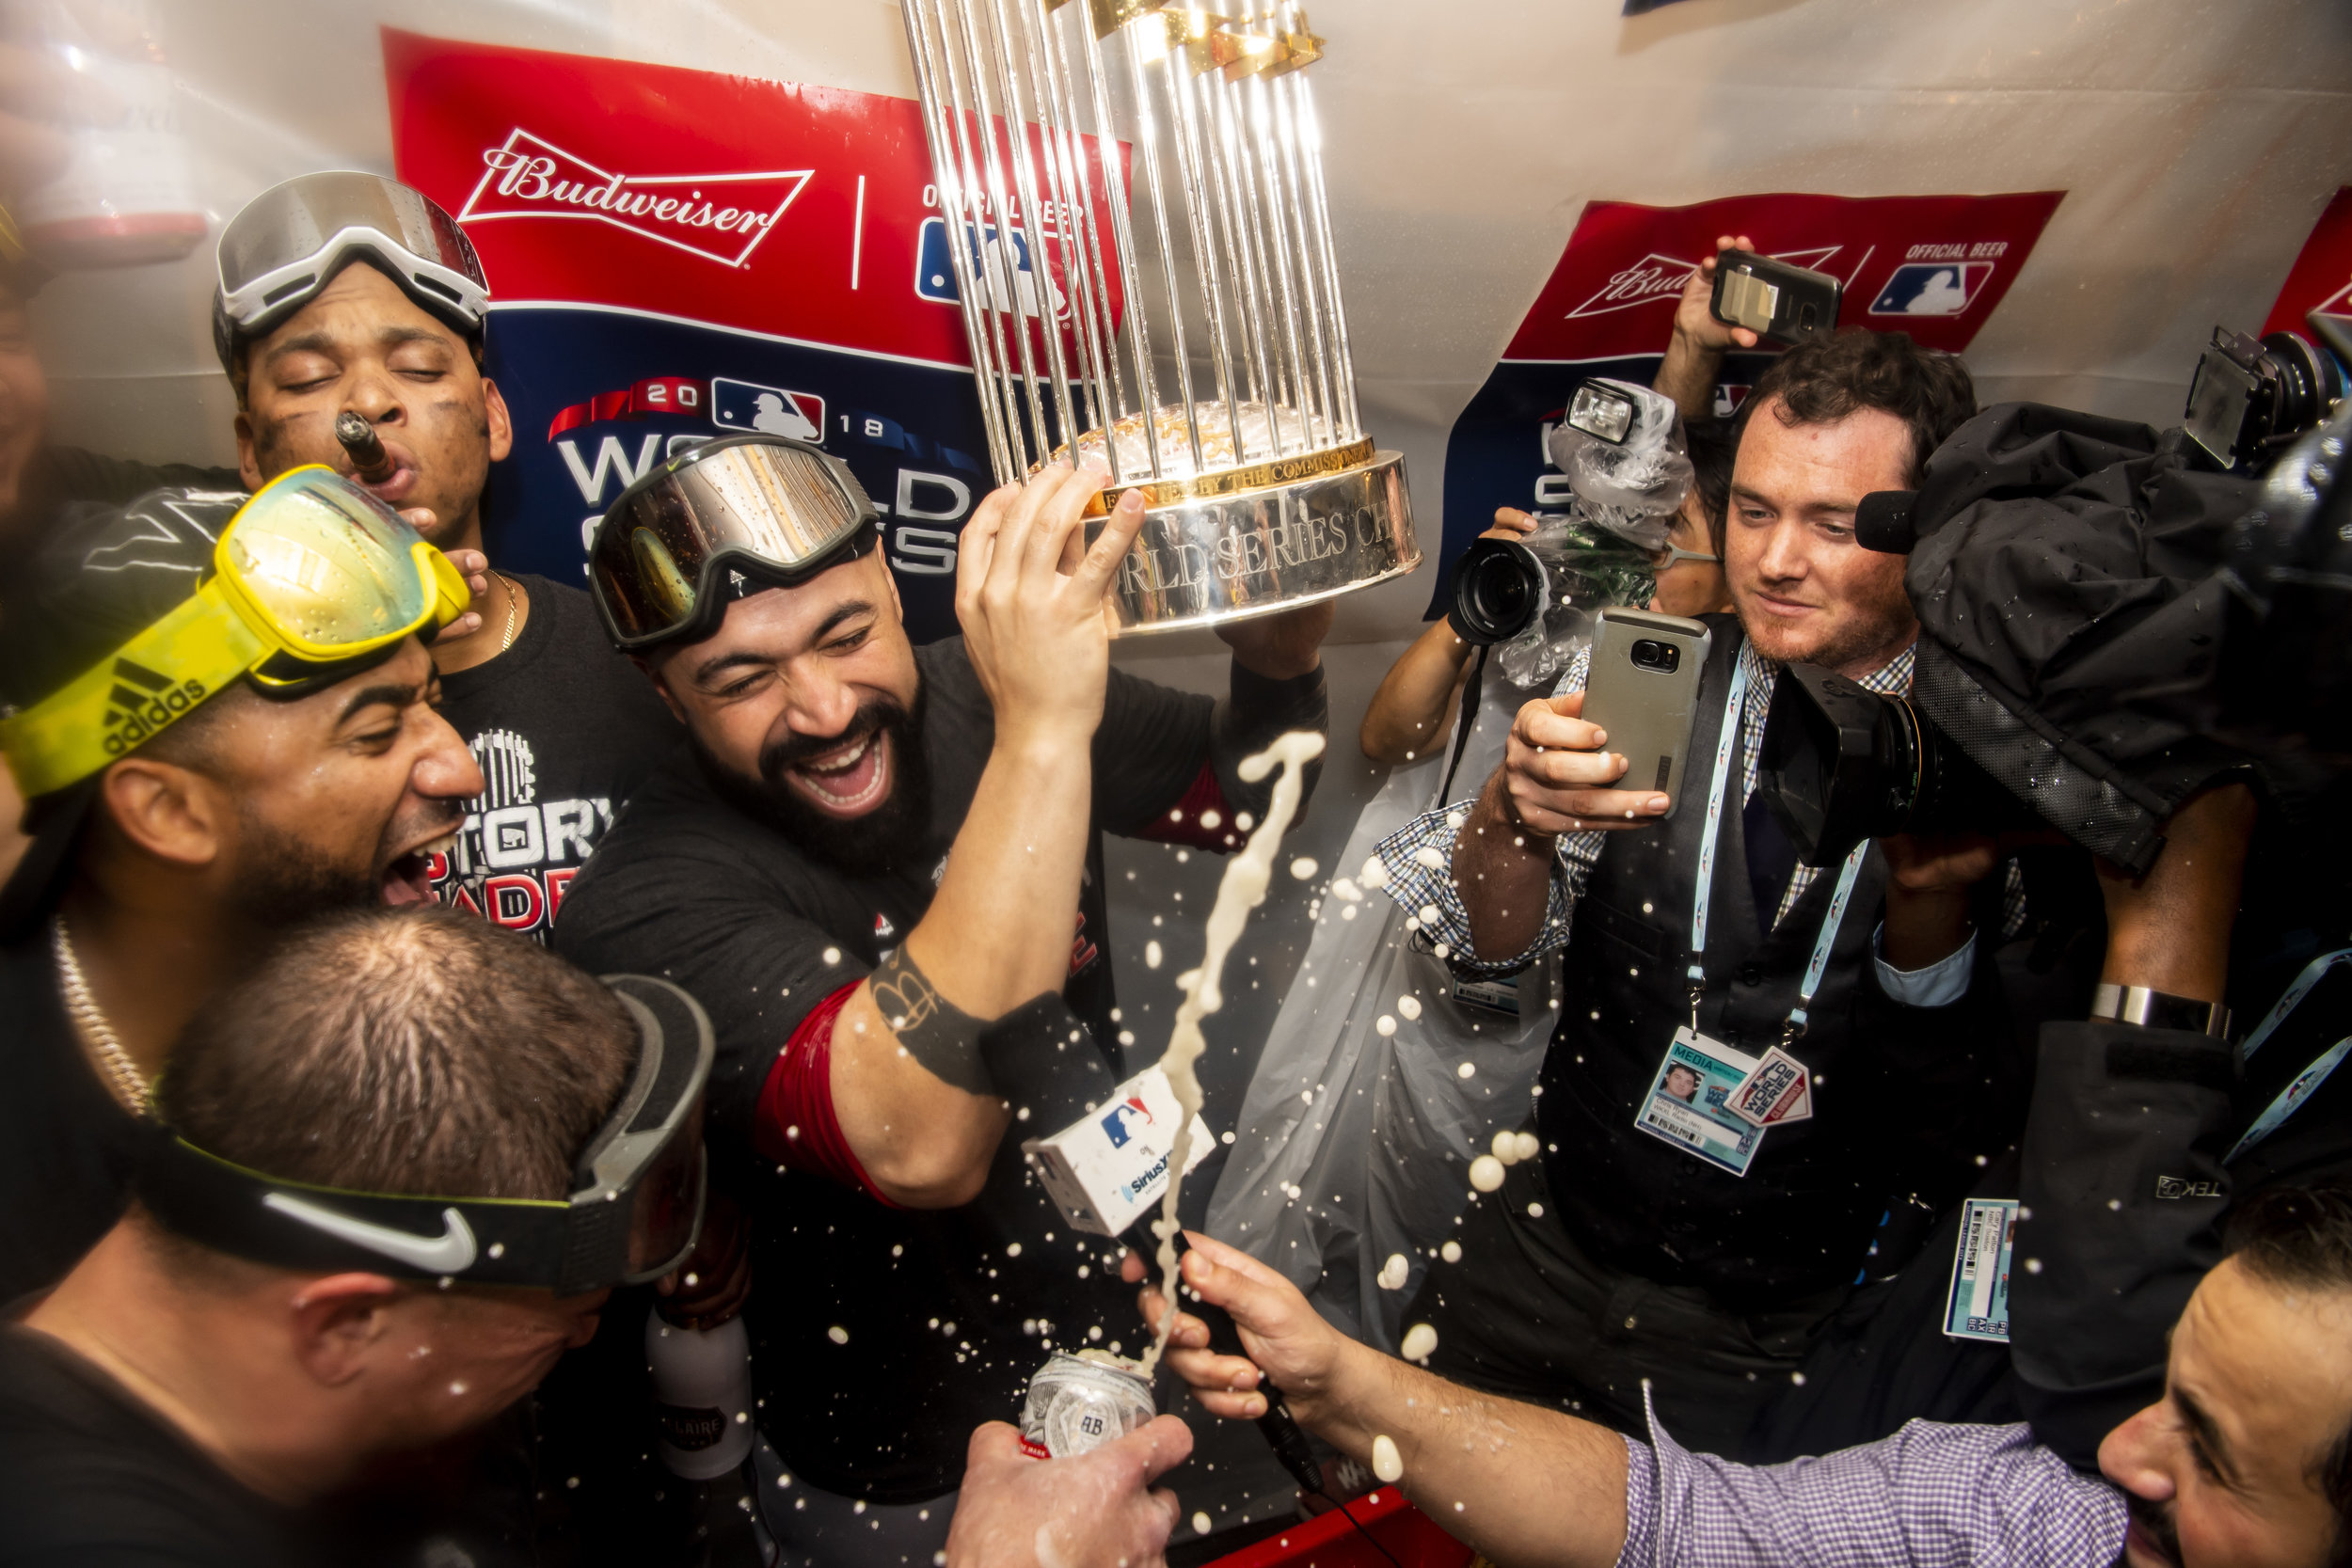 October 28, 2018, Los Angeles, Ca: Boston Red Sox catcher Sandy Leon holds up the World Series Trophy after the Boston Red Sox defeated the Los Angeles Dodgers in Game 5 to win the World Series at Dodger Stadium in Los Angeles, California on Saturday, October 28, 2018. (Photo by Matthew Thomas/Boston Red Sox)